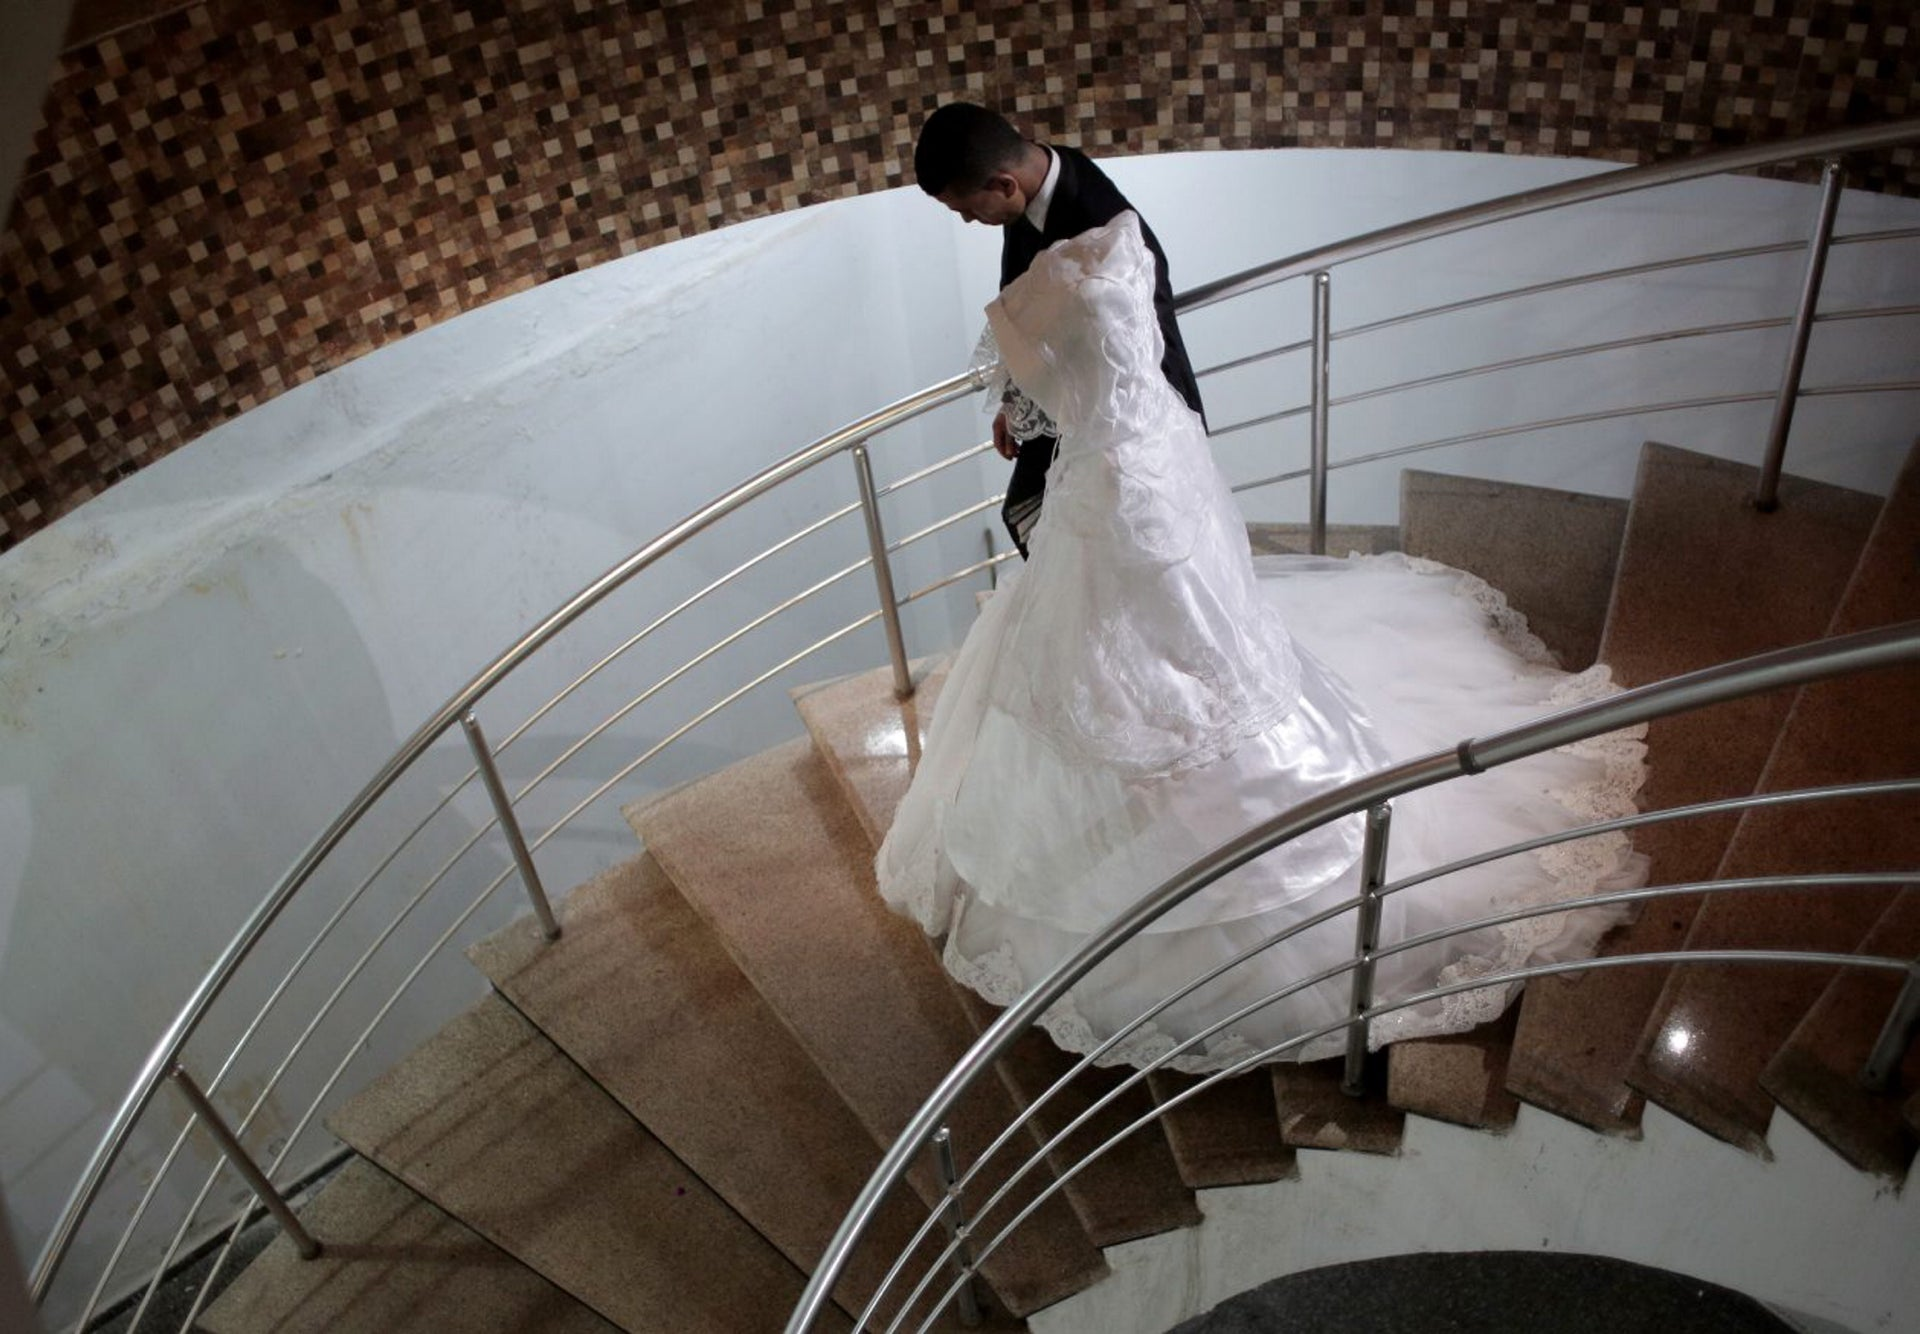 In this Saturday, July 30, 2016 photo, Palestinian groom Saed Abu Aser, and his bride, Falasteen, take the stairs down to the wedding hall, in Gaza City.